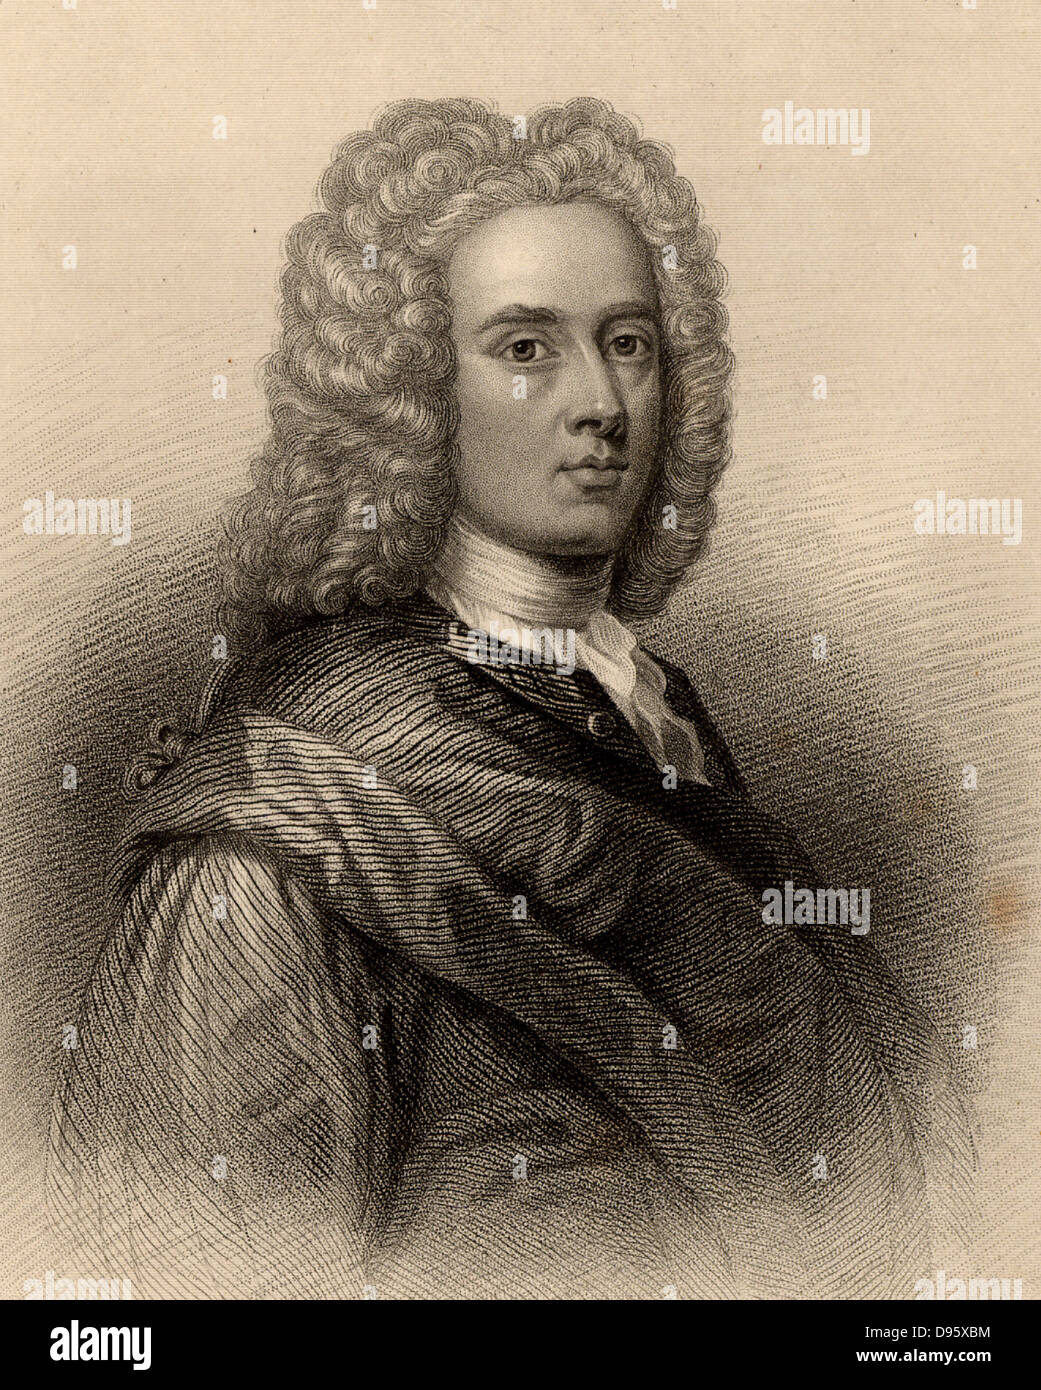 William Aikman (1682-1731) Scottish portrait painter.  Engraving from 'A Biographical Dictionary of Eminent - Stock Image